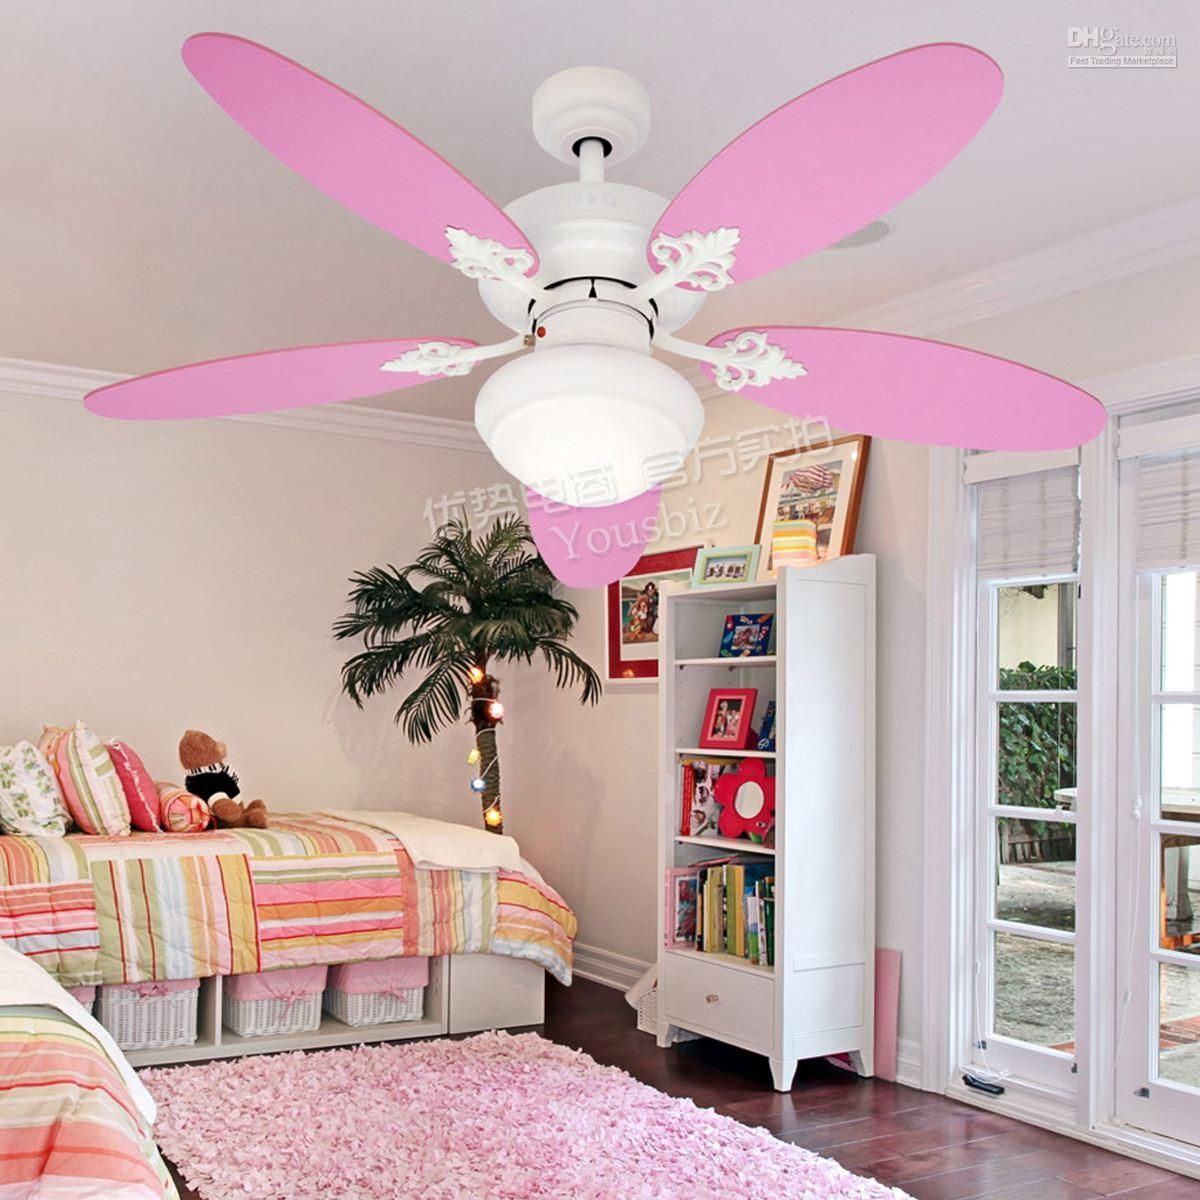 Pink Ceiling Fans With Lights For Teenage Girl Bedroom